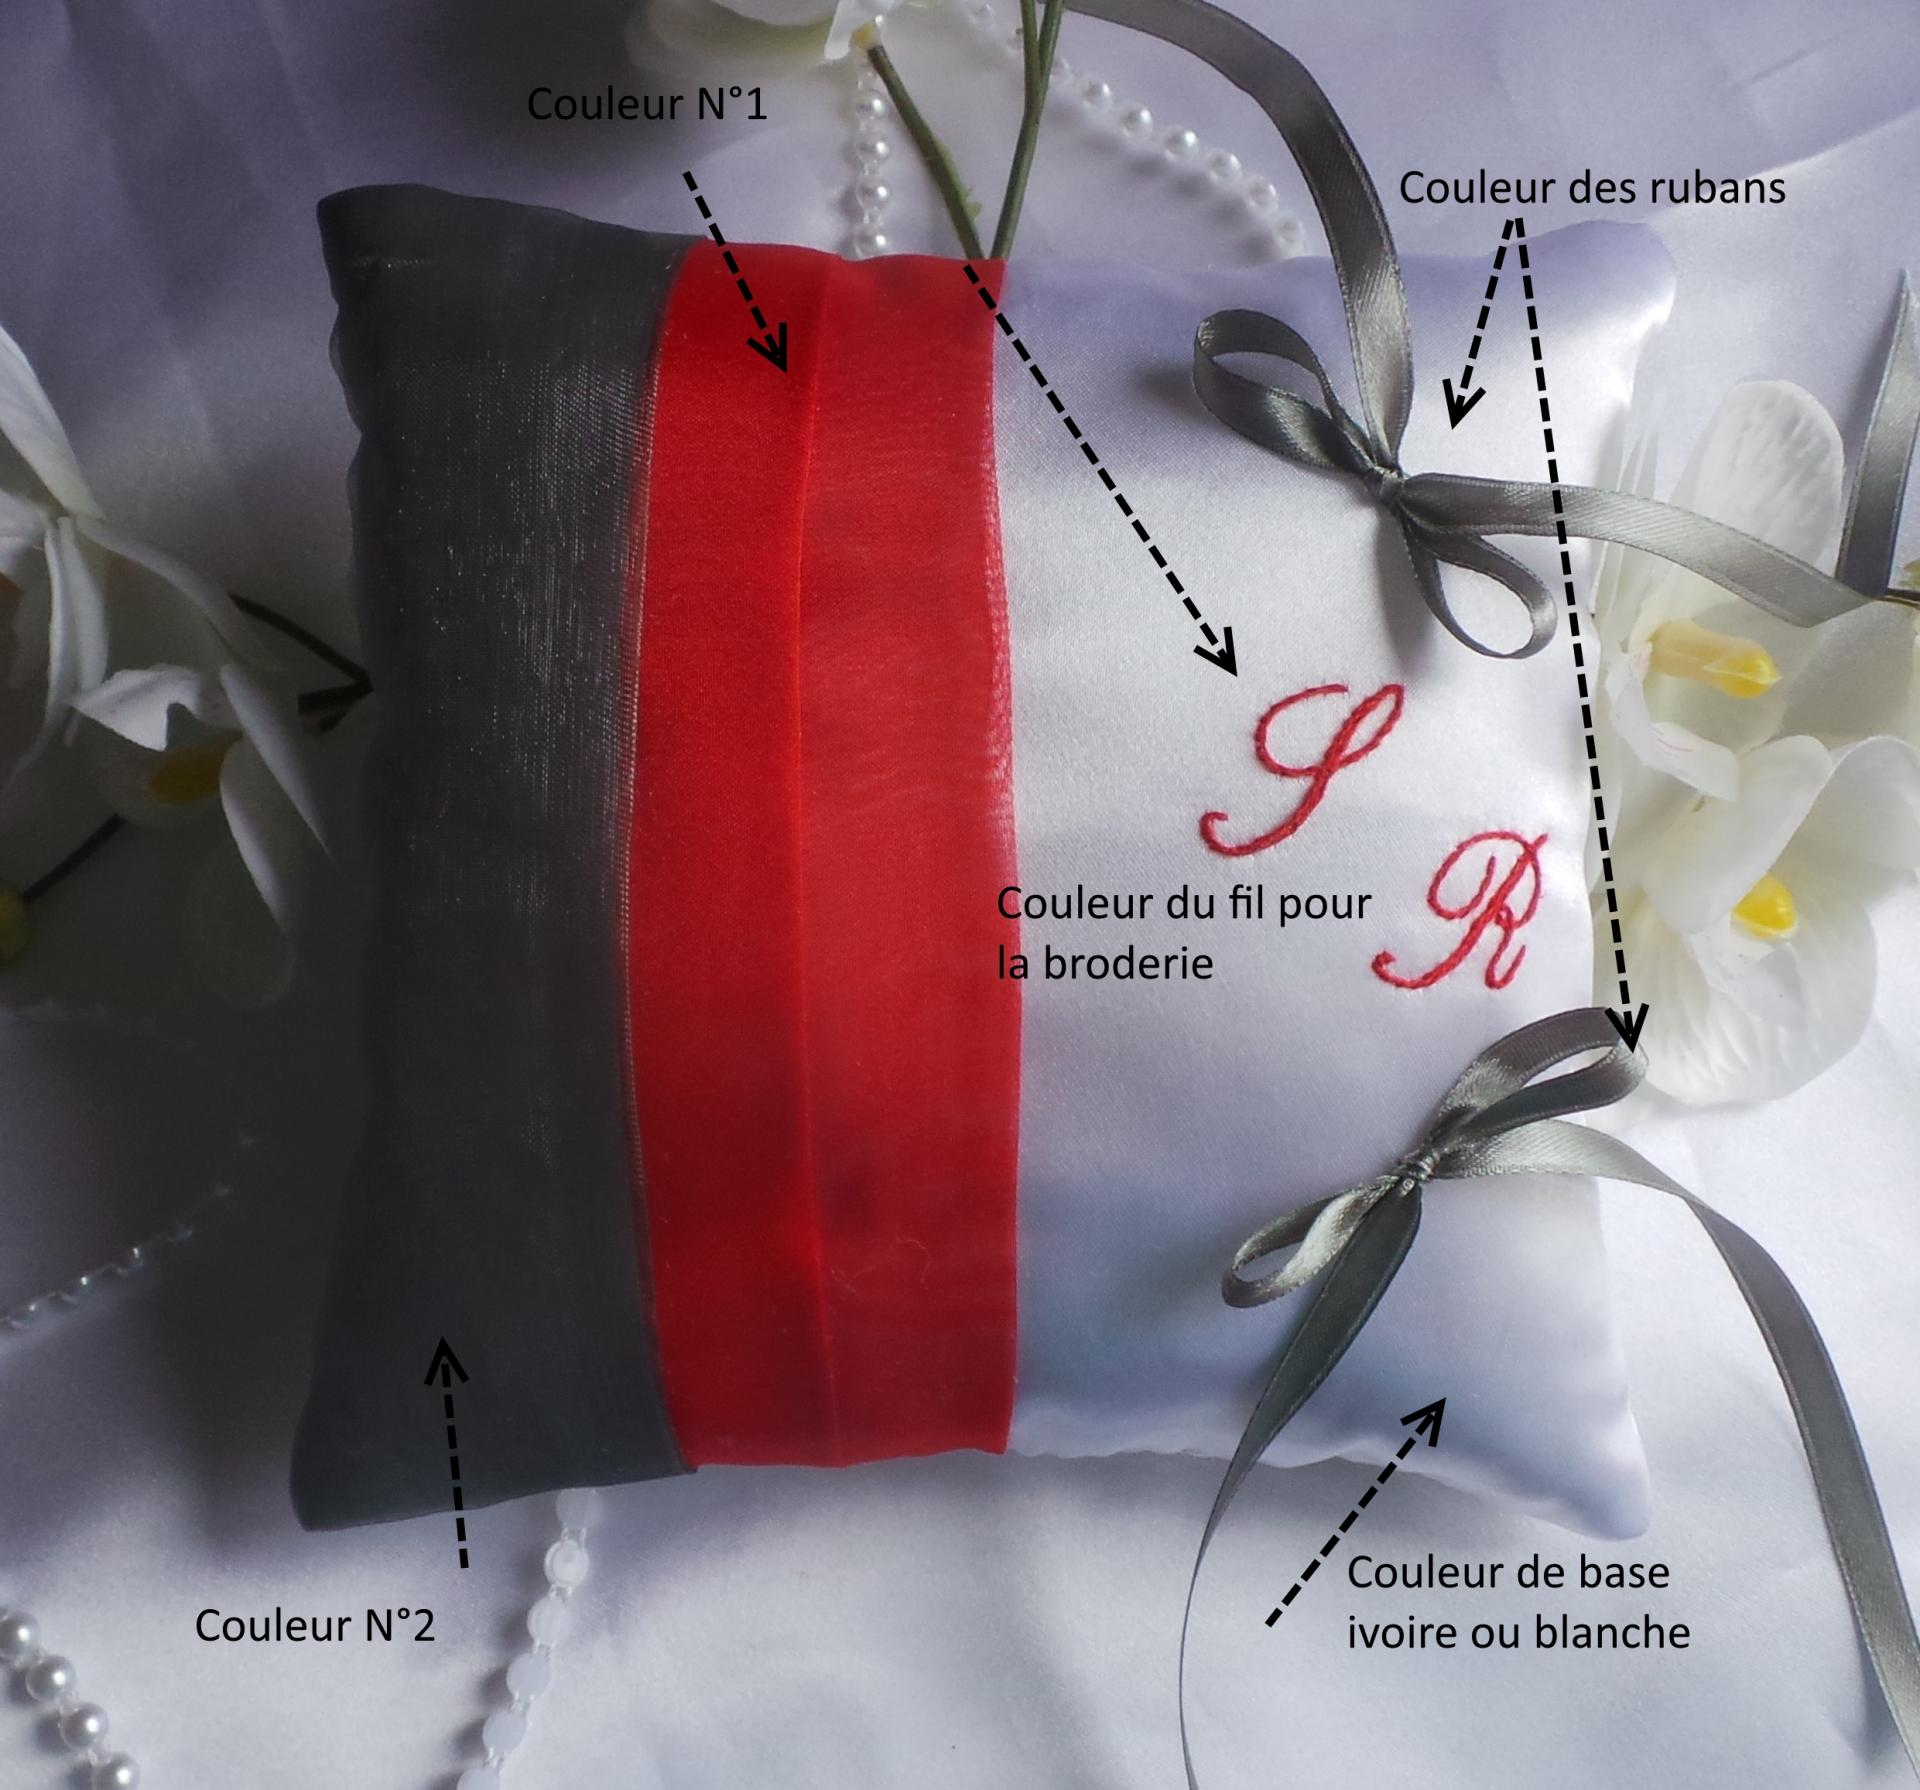 Coussin mariage reperes couleurs